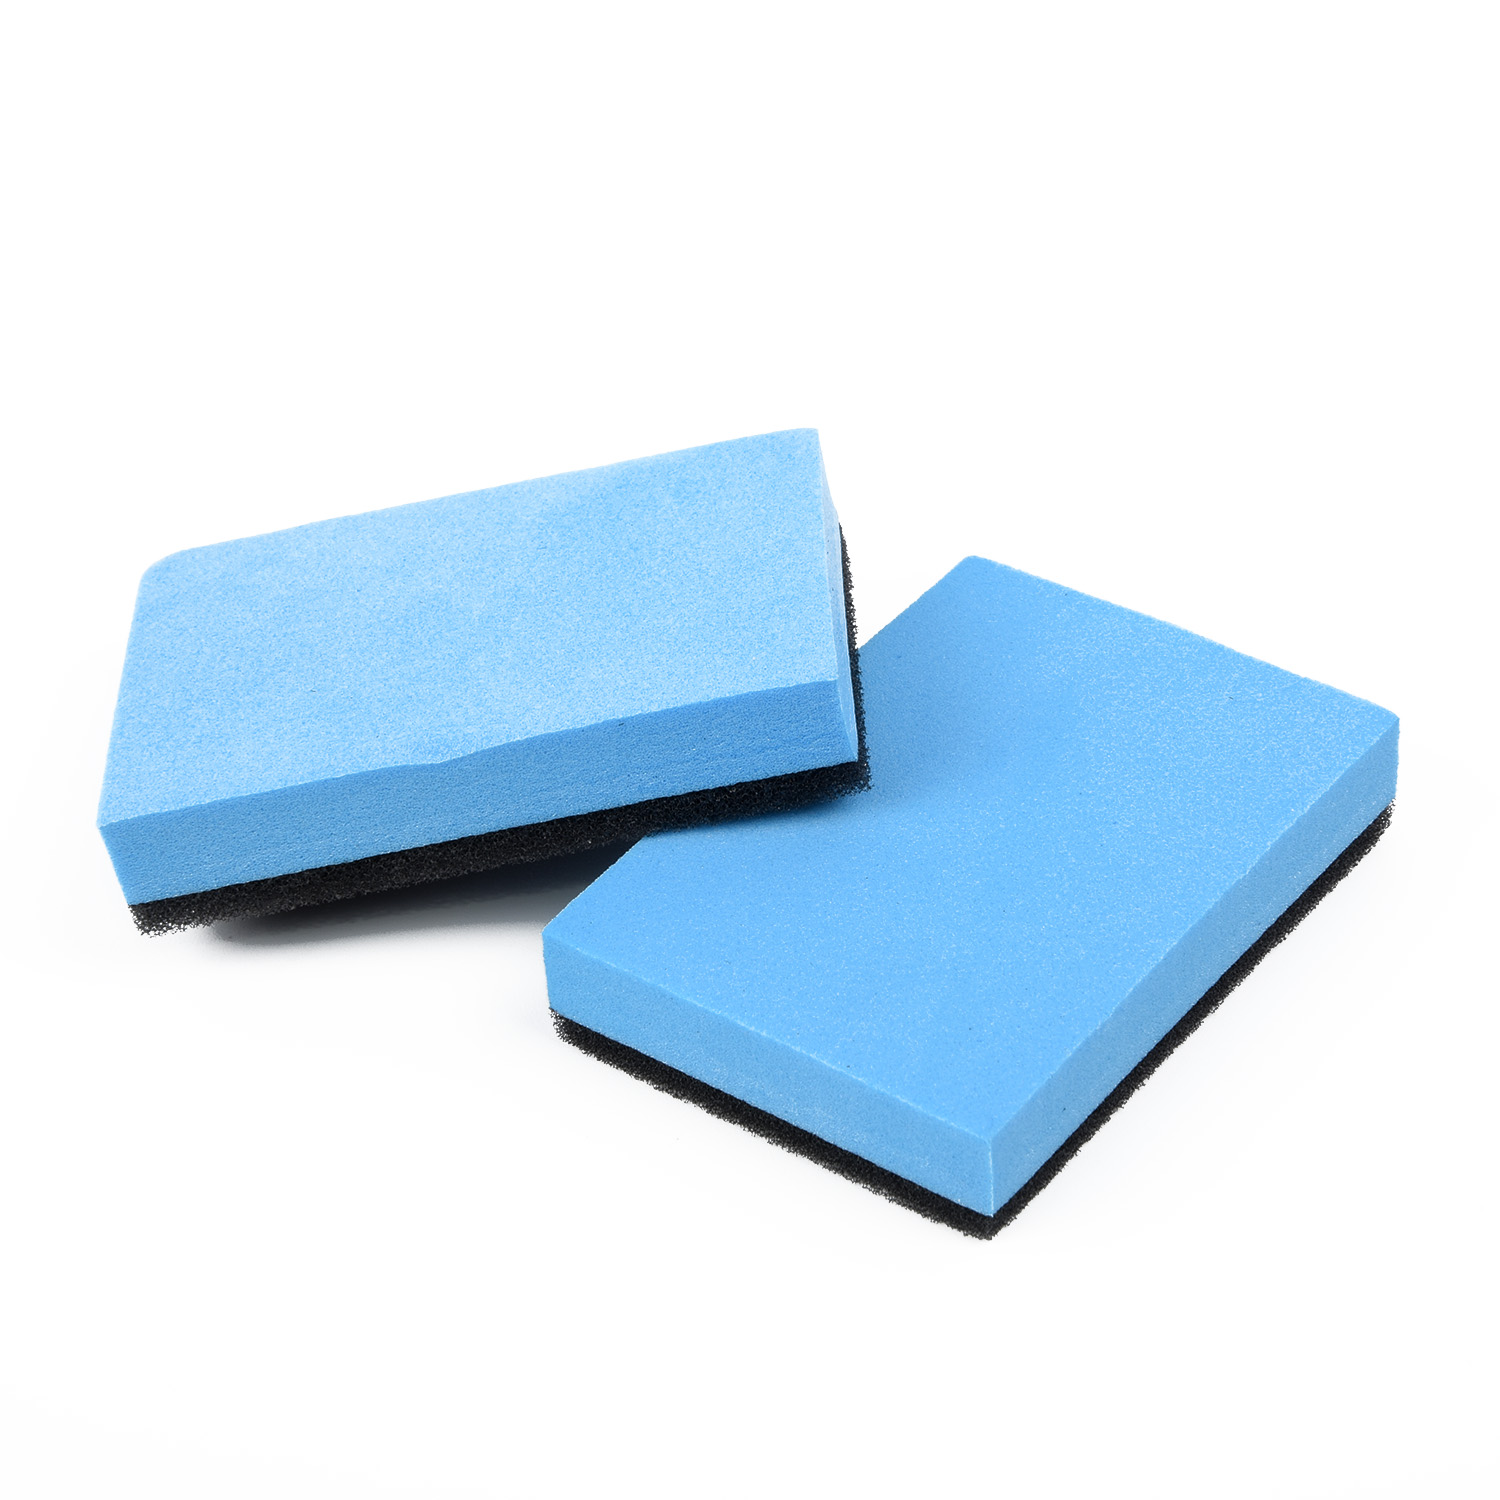 2pcs Car Shampoo Sponge Pad Cleaning Tool Glass Wax Blue Black Ceramic Coating Polishing Replacement EVA Sponge Accessories